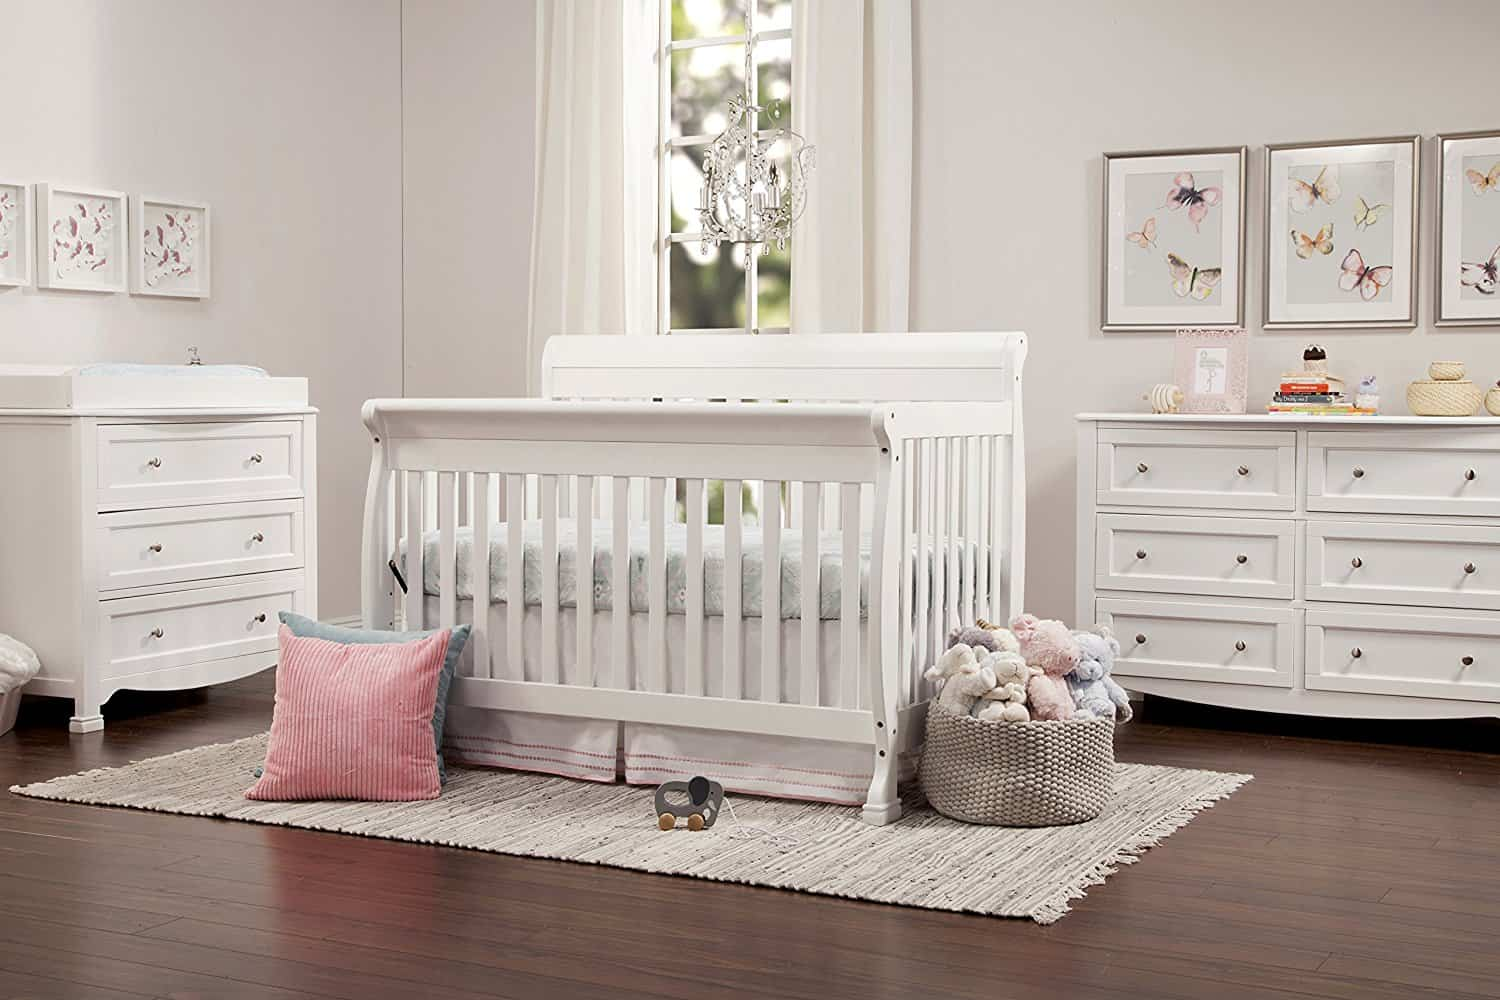 Crib And Toddler Bed In One Room